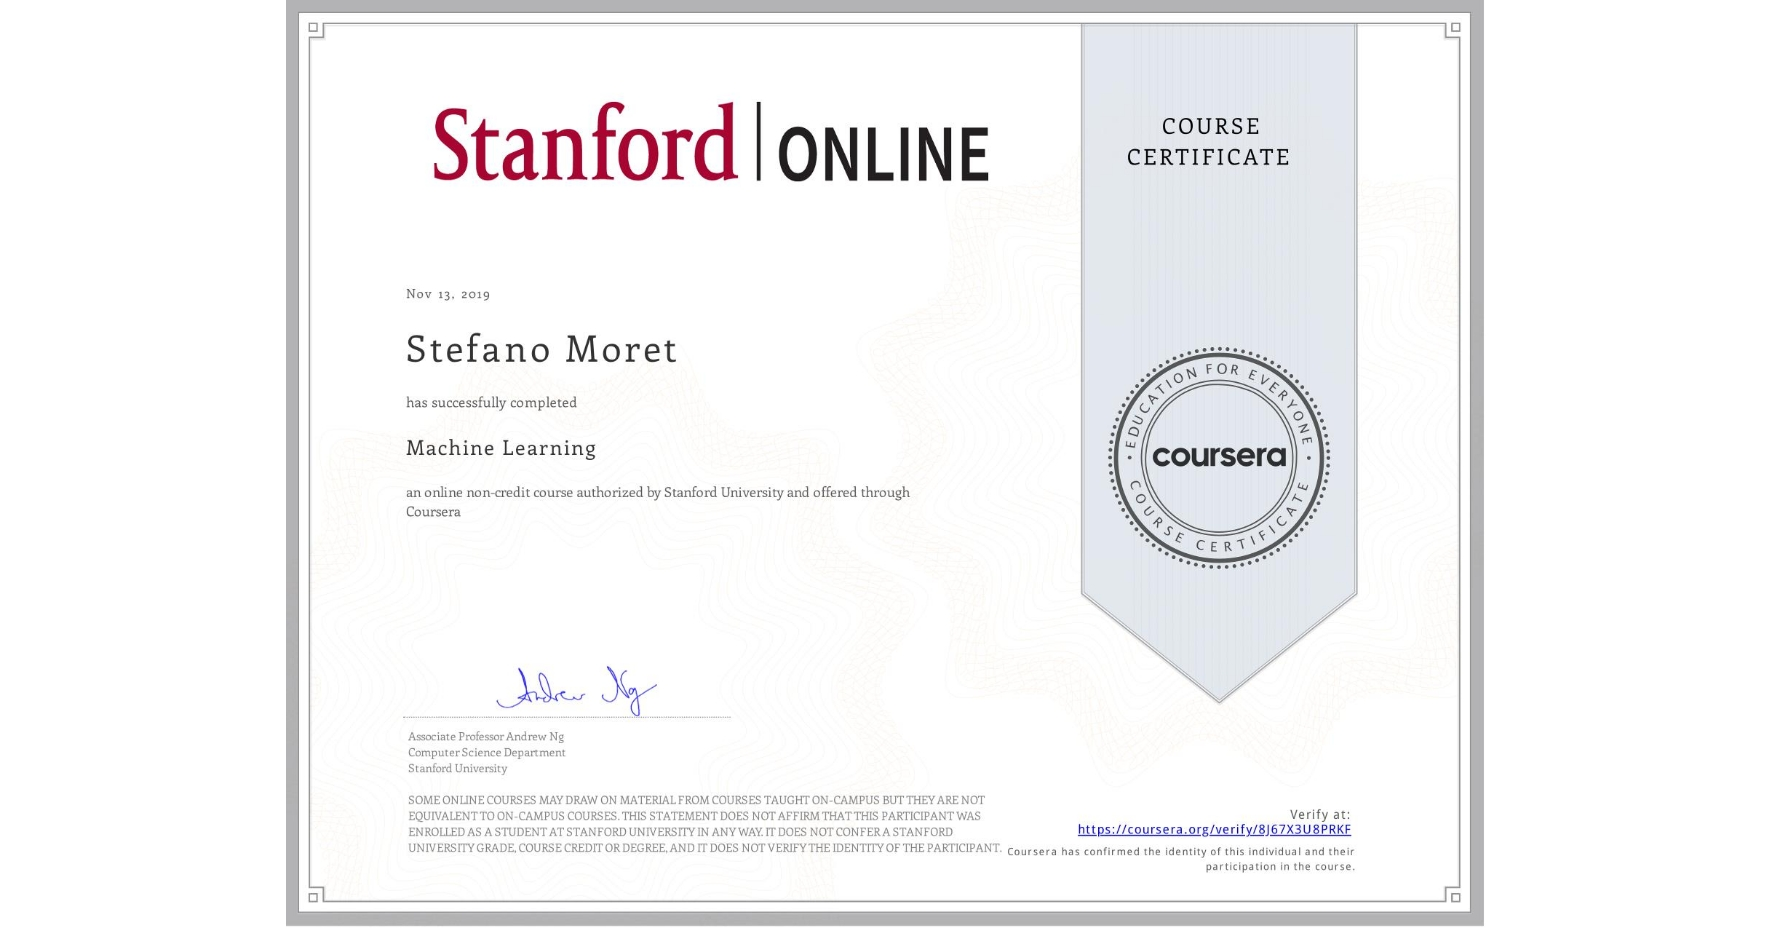 View certificate for Stefano Moret, Machine Learning, an online non-credit course authorized by Stanford University and offered through Coursera